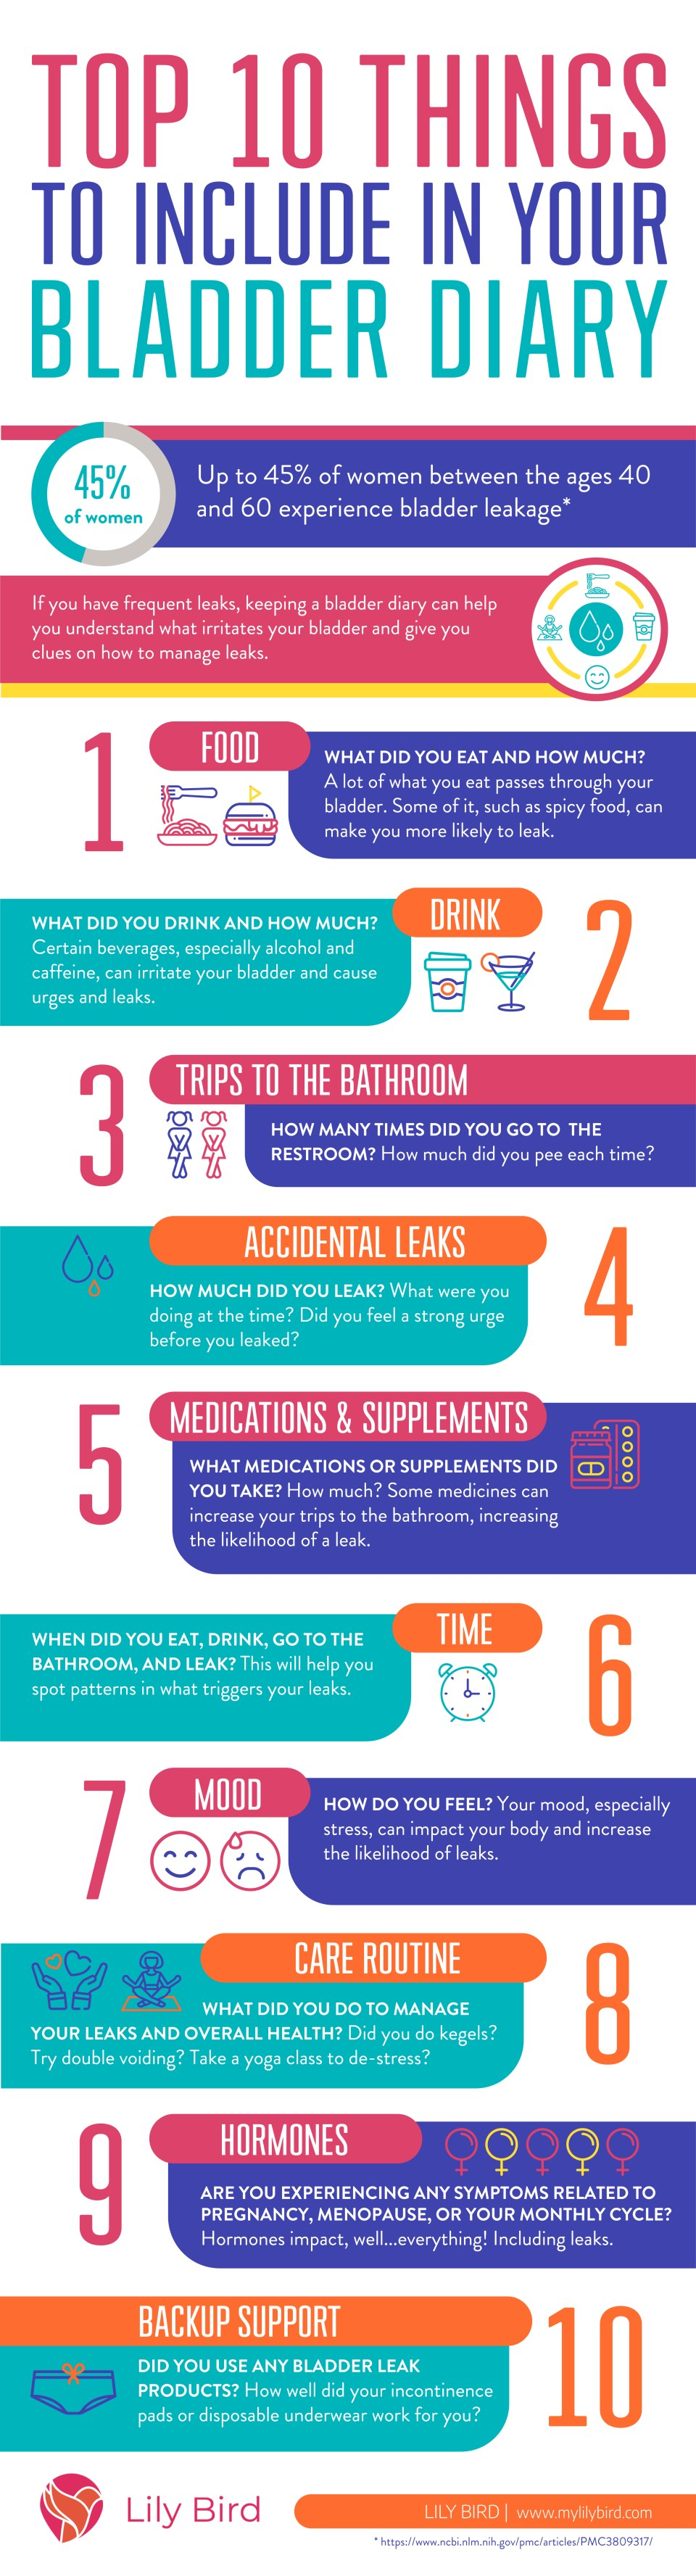 Bladder diary infographic